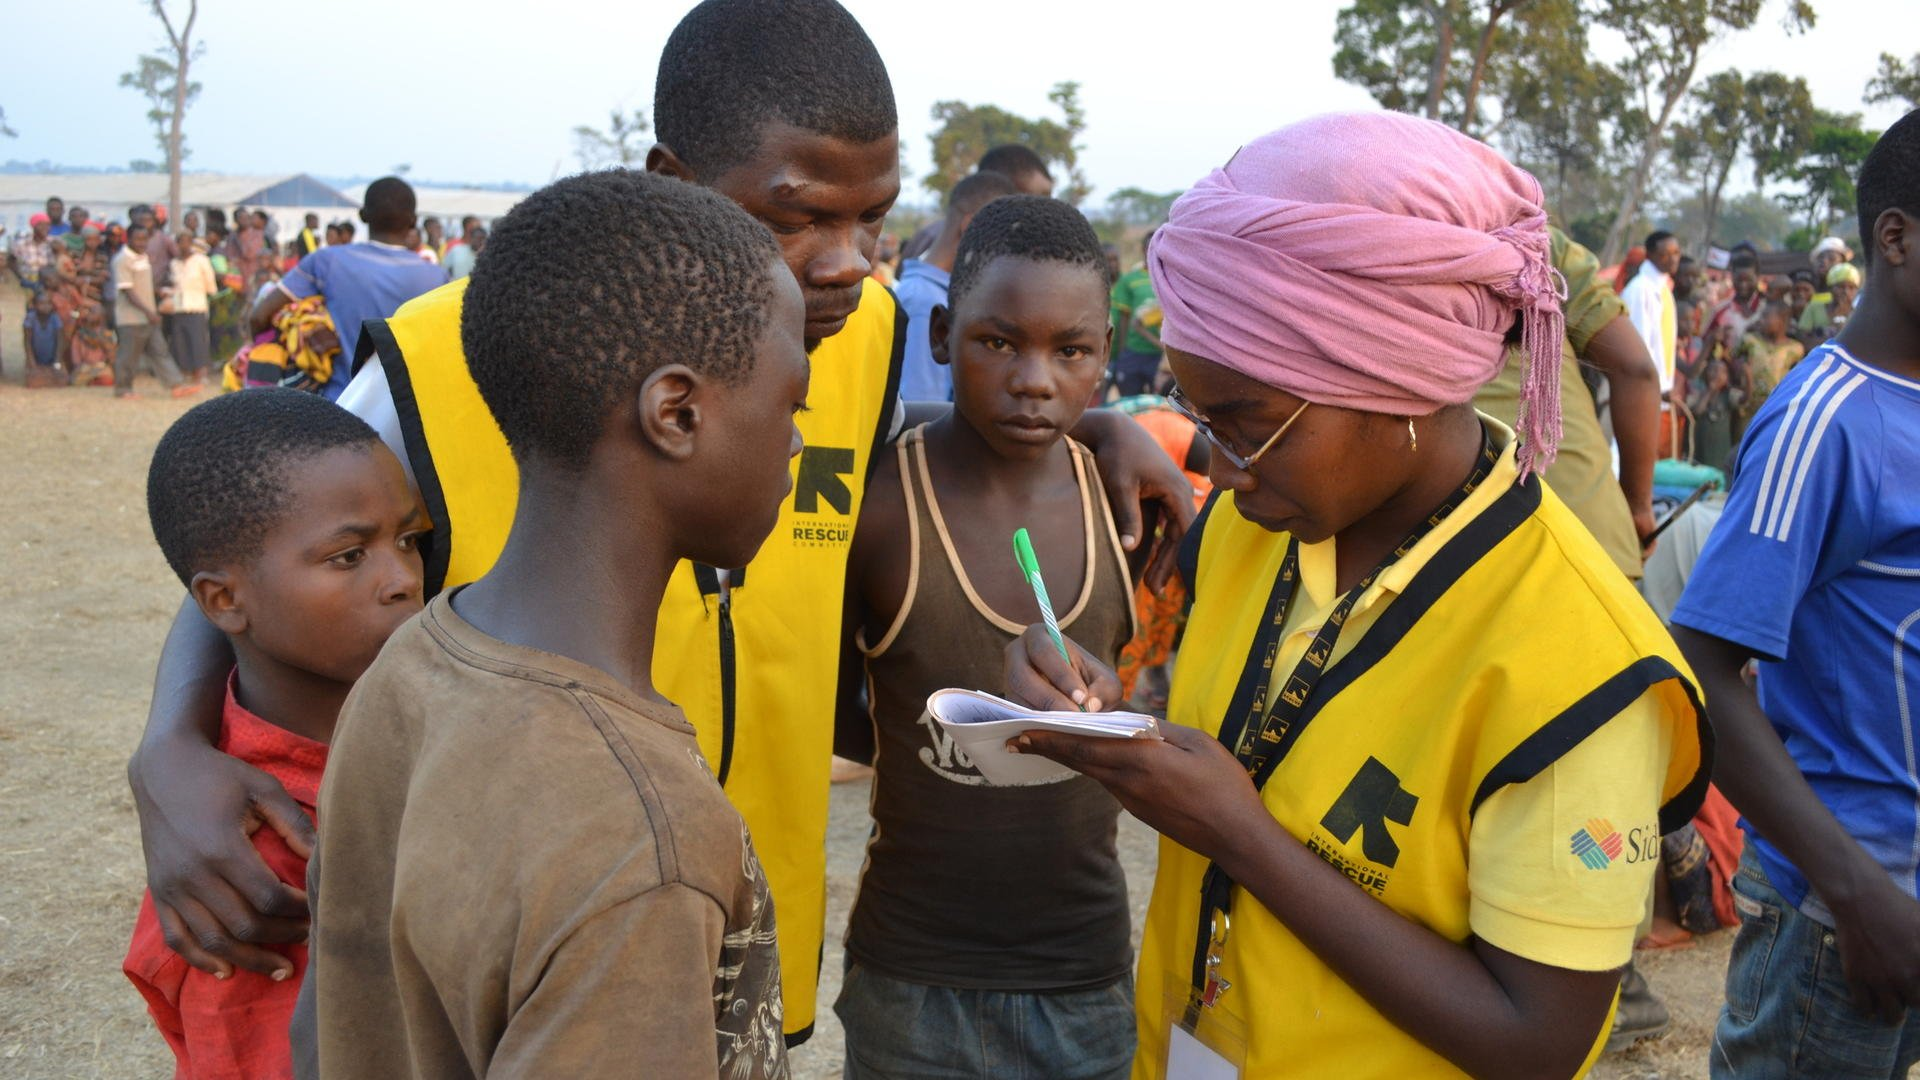 International Rescue Committee staff are working to reunite families in Nyarugusu refugee camp, Tanzania.